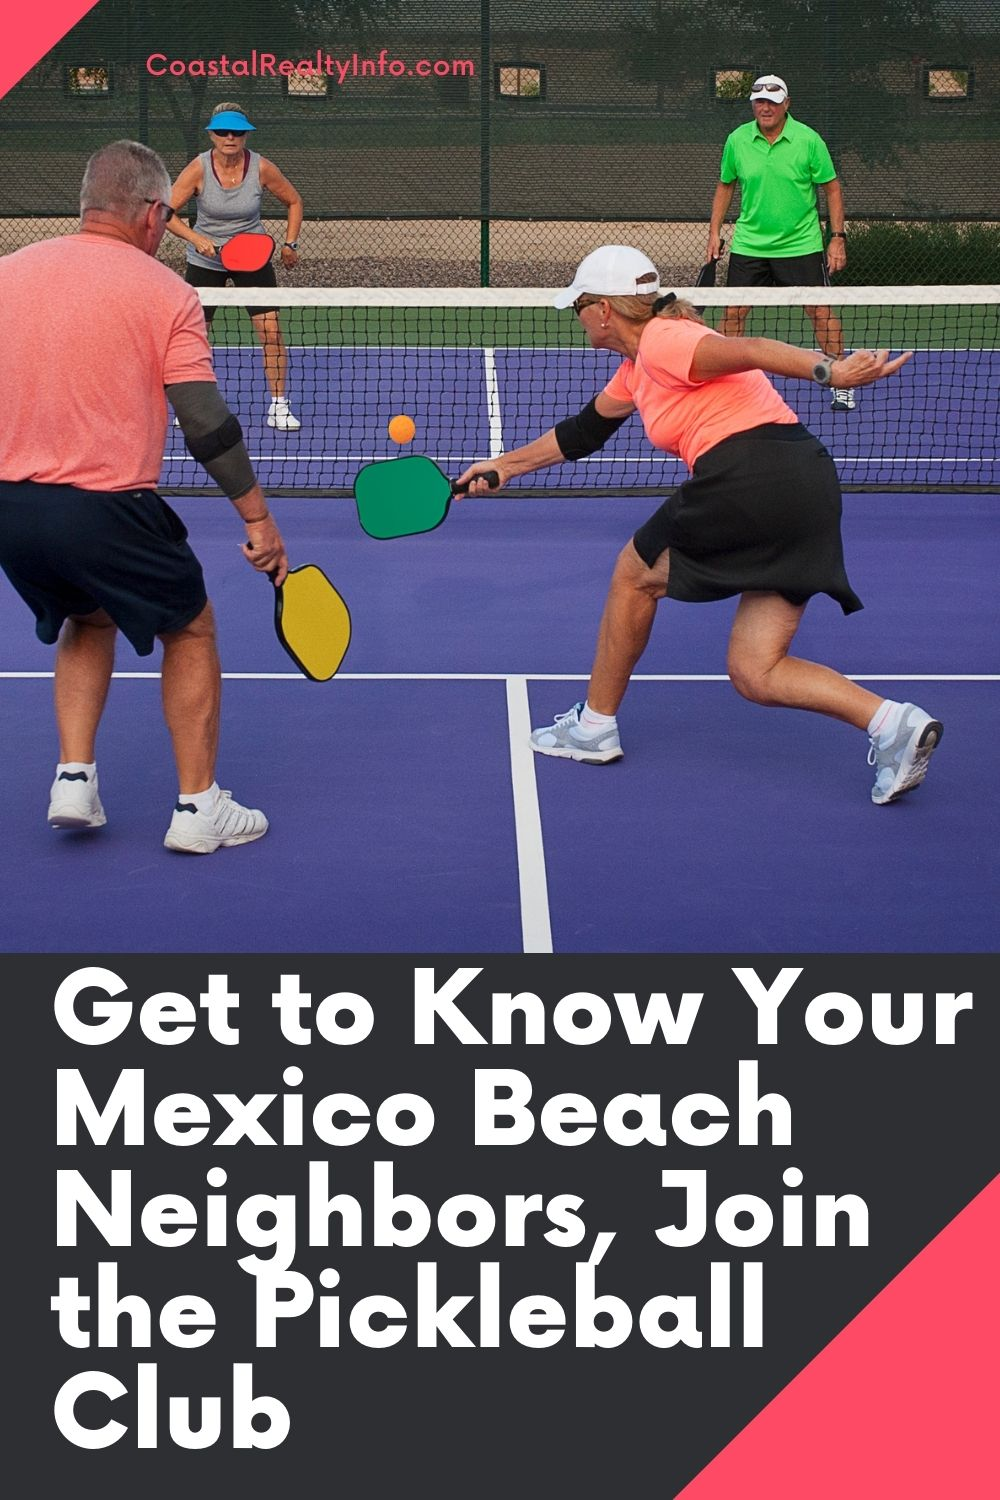 Get to Know Your Mexico Beach Neighbors, Join the Pickleball Club